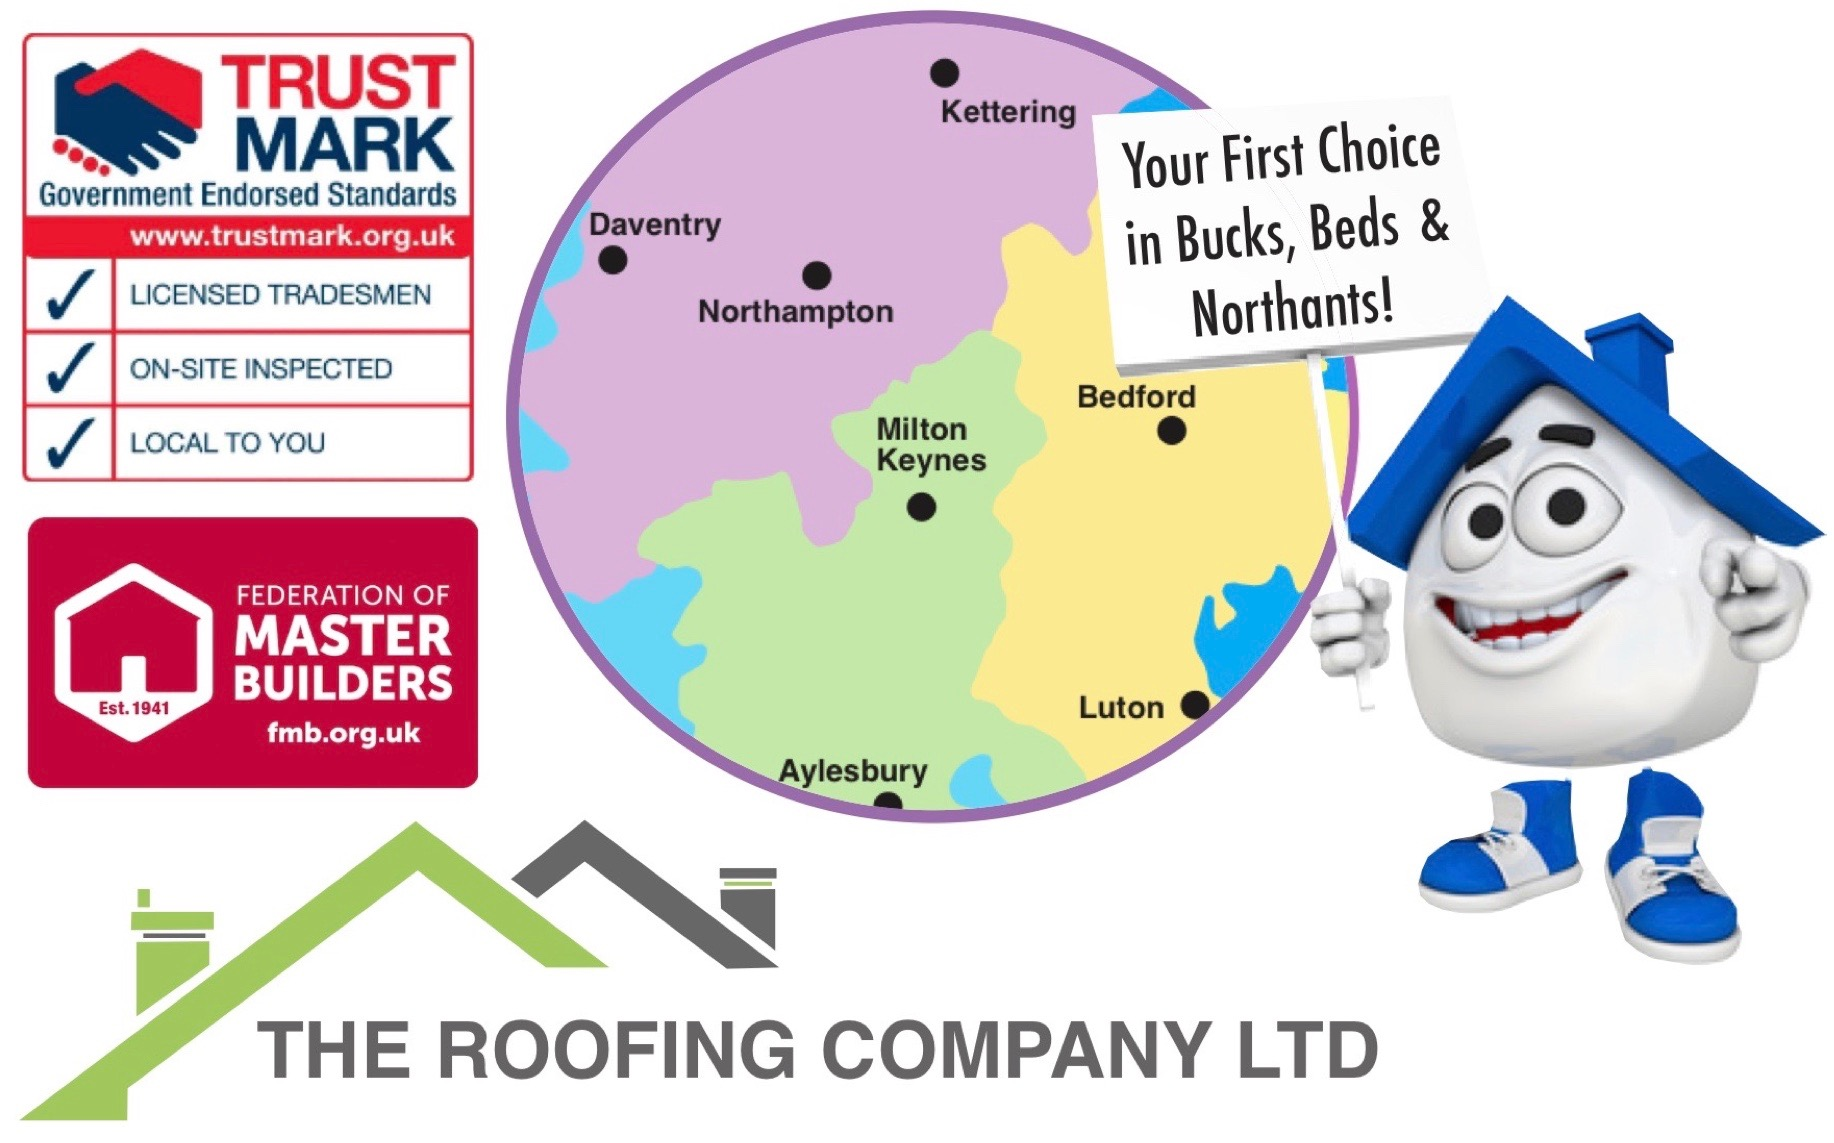 The Roofing Company are professional and competitive roofers in milton keynes covering milton keynes, bletchley, wolverton, newport pagnell, buckingham, winslow, bedford, leighton buzzard, dunstable, luton, woburn, aylesbury, bicester, brackley, towcester, daventry, northampton and old stratford.